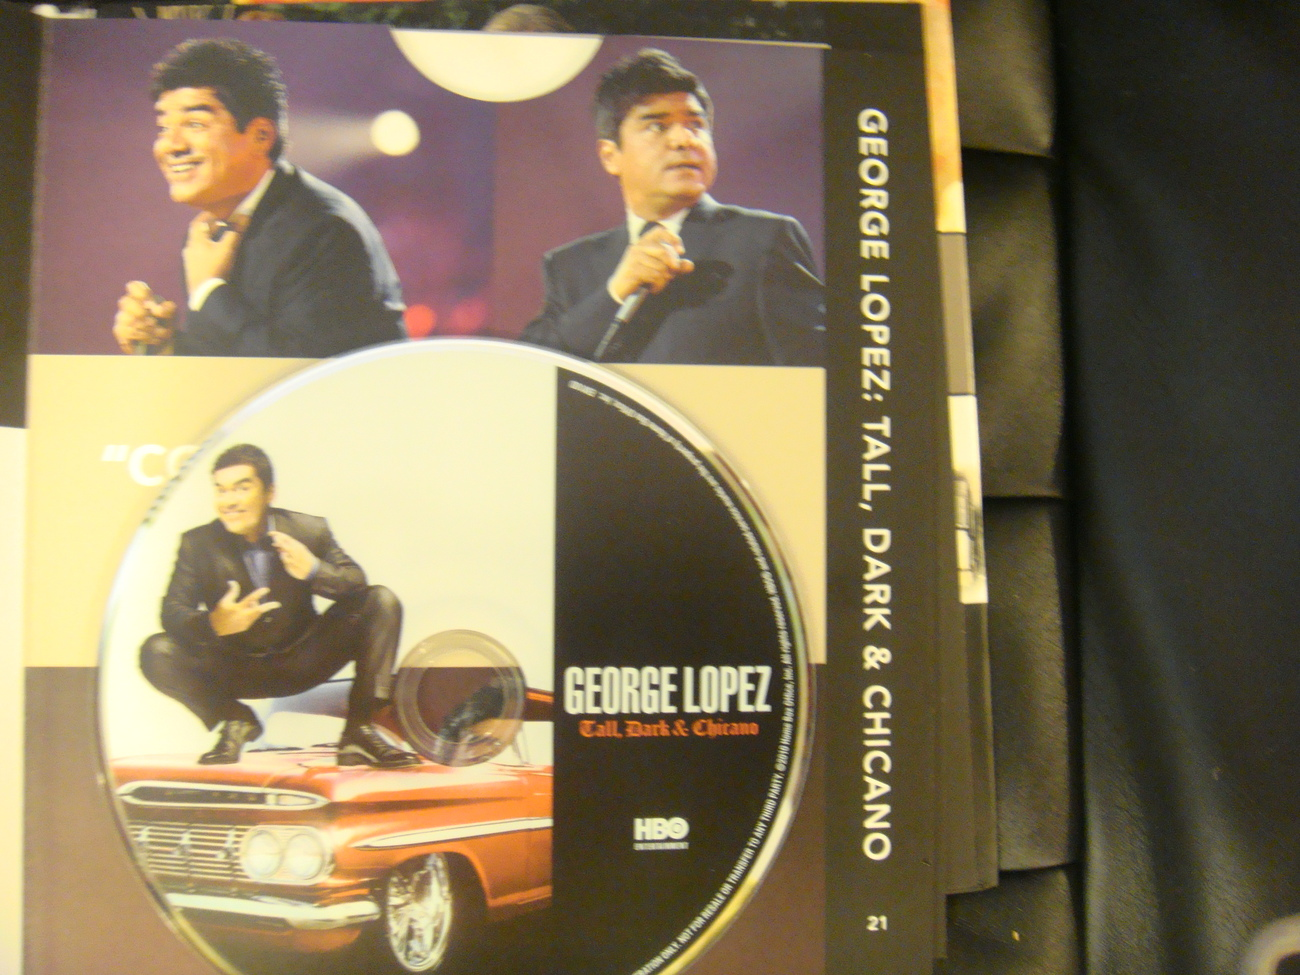 GEORGE LOPEZ TALL DARK & CHICANO EMMY DVD HBO STAND UP